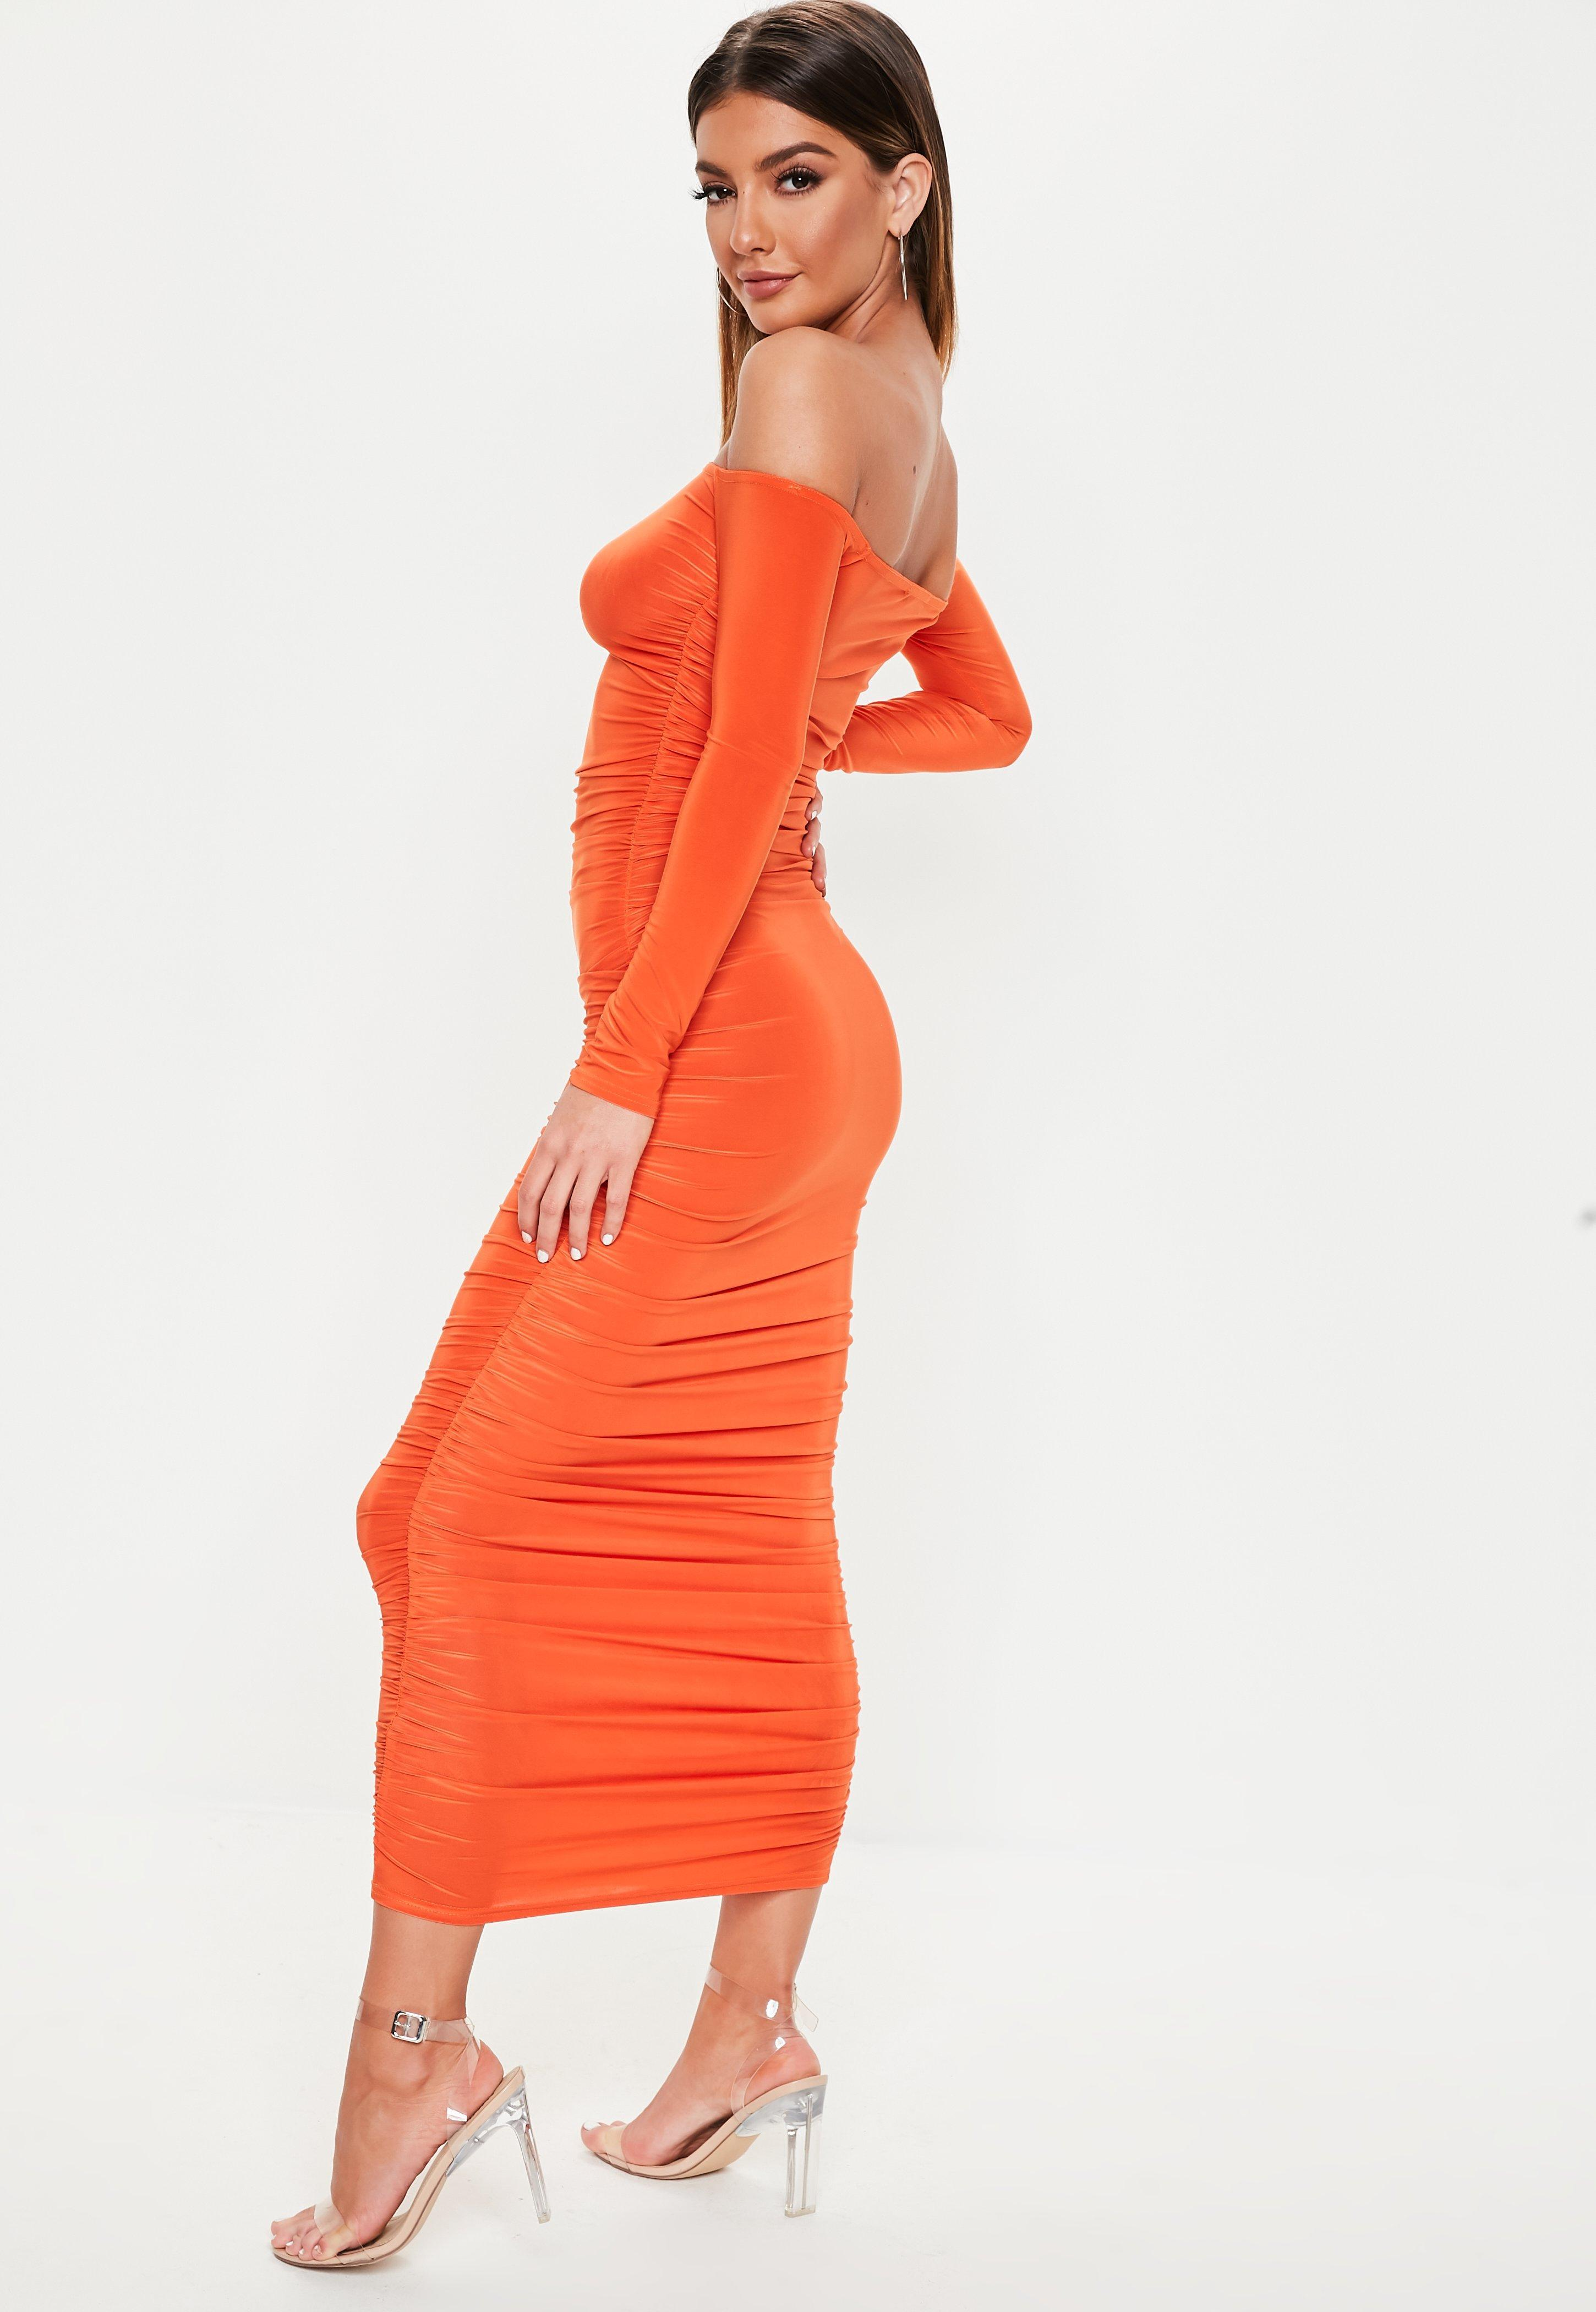 e717a08b7caf Missguided - Orange Bardot Slinky Ruched Bodycon Midaxi Dress - Lyst. View  fullscreen